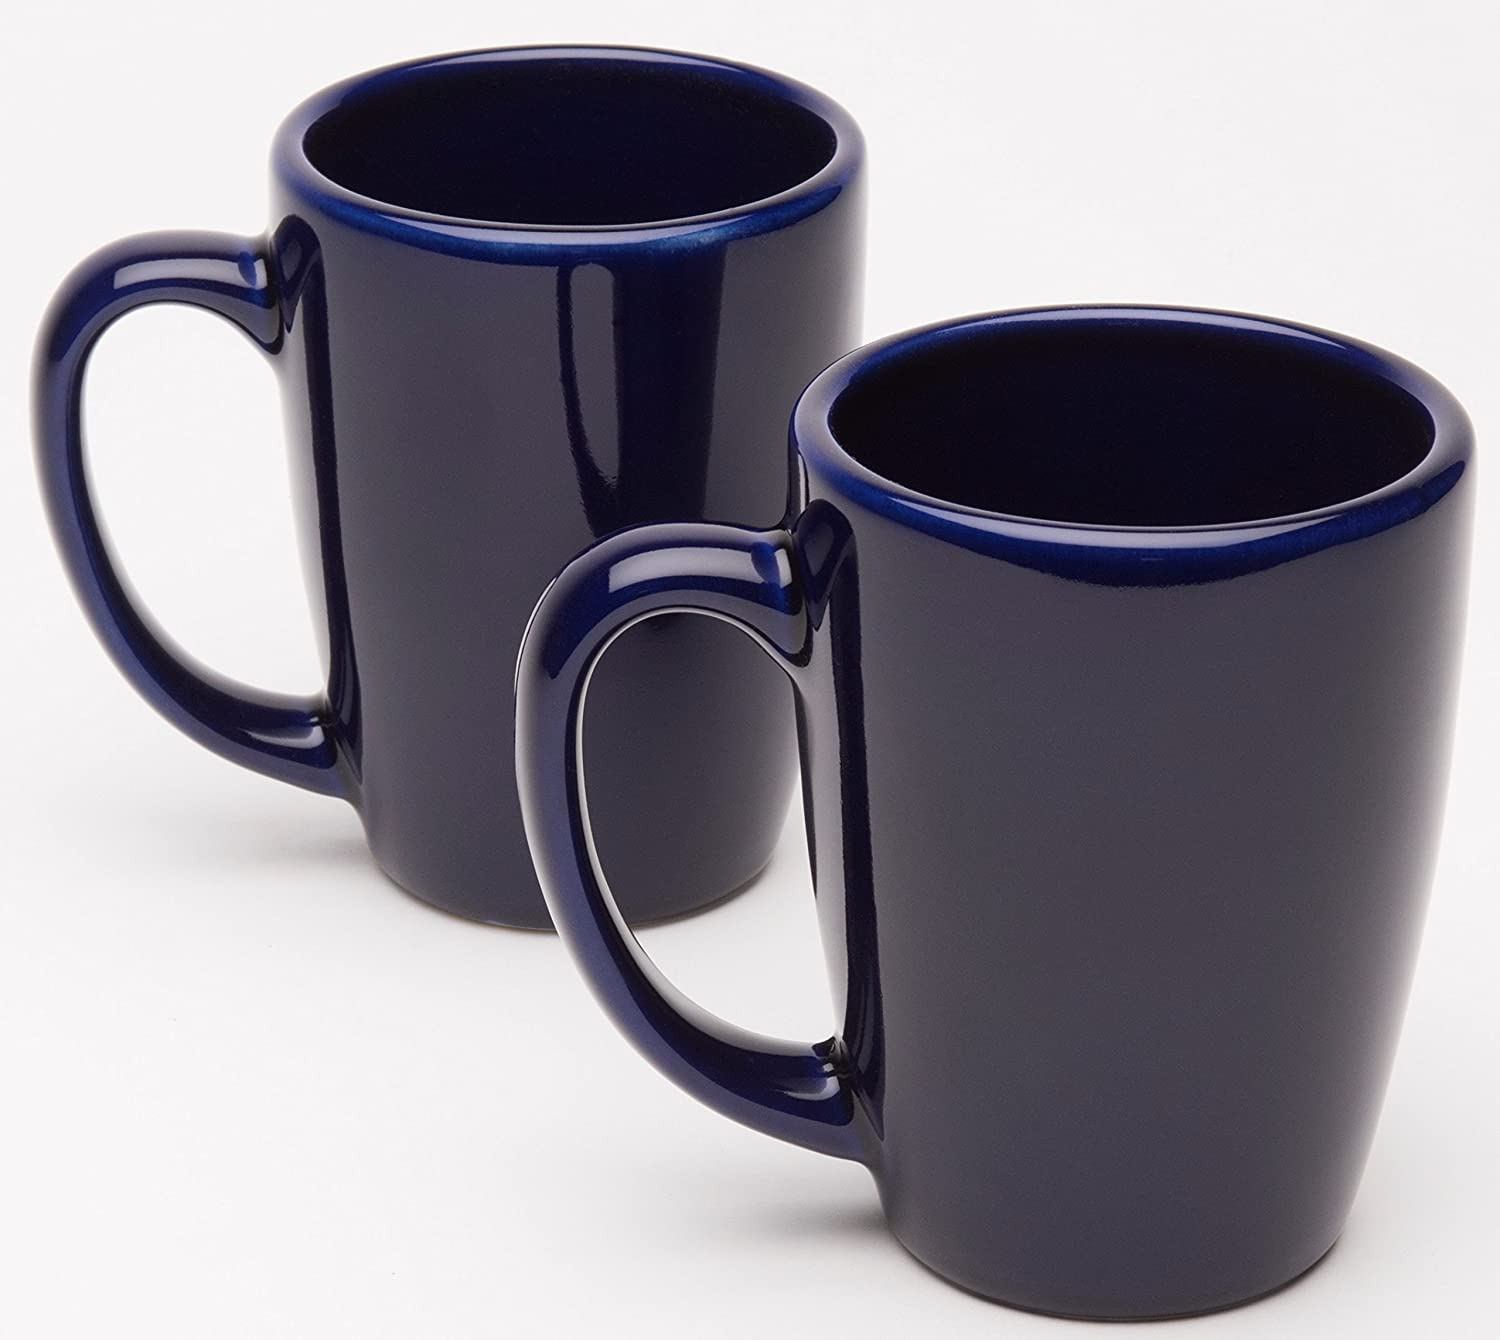 American Mug Pottery Ceramic Bistro Style Coffee Mug Made In Usa Cobalt Blue 14 Oz Pack Of 2 Amazon Ca Home Kitchen